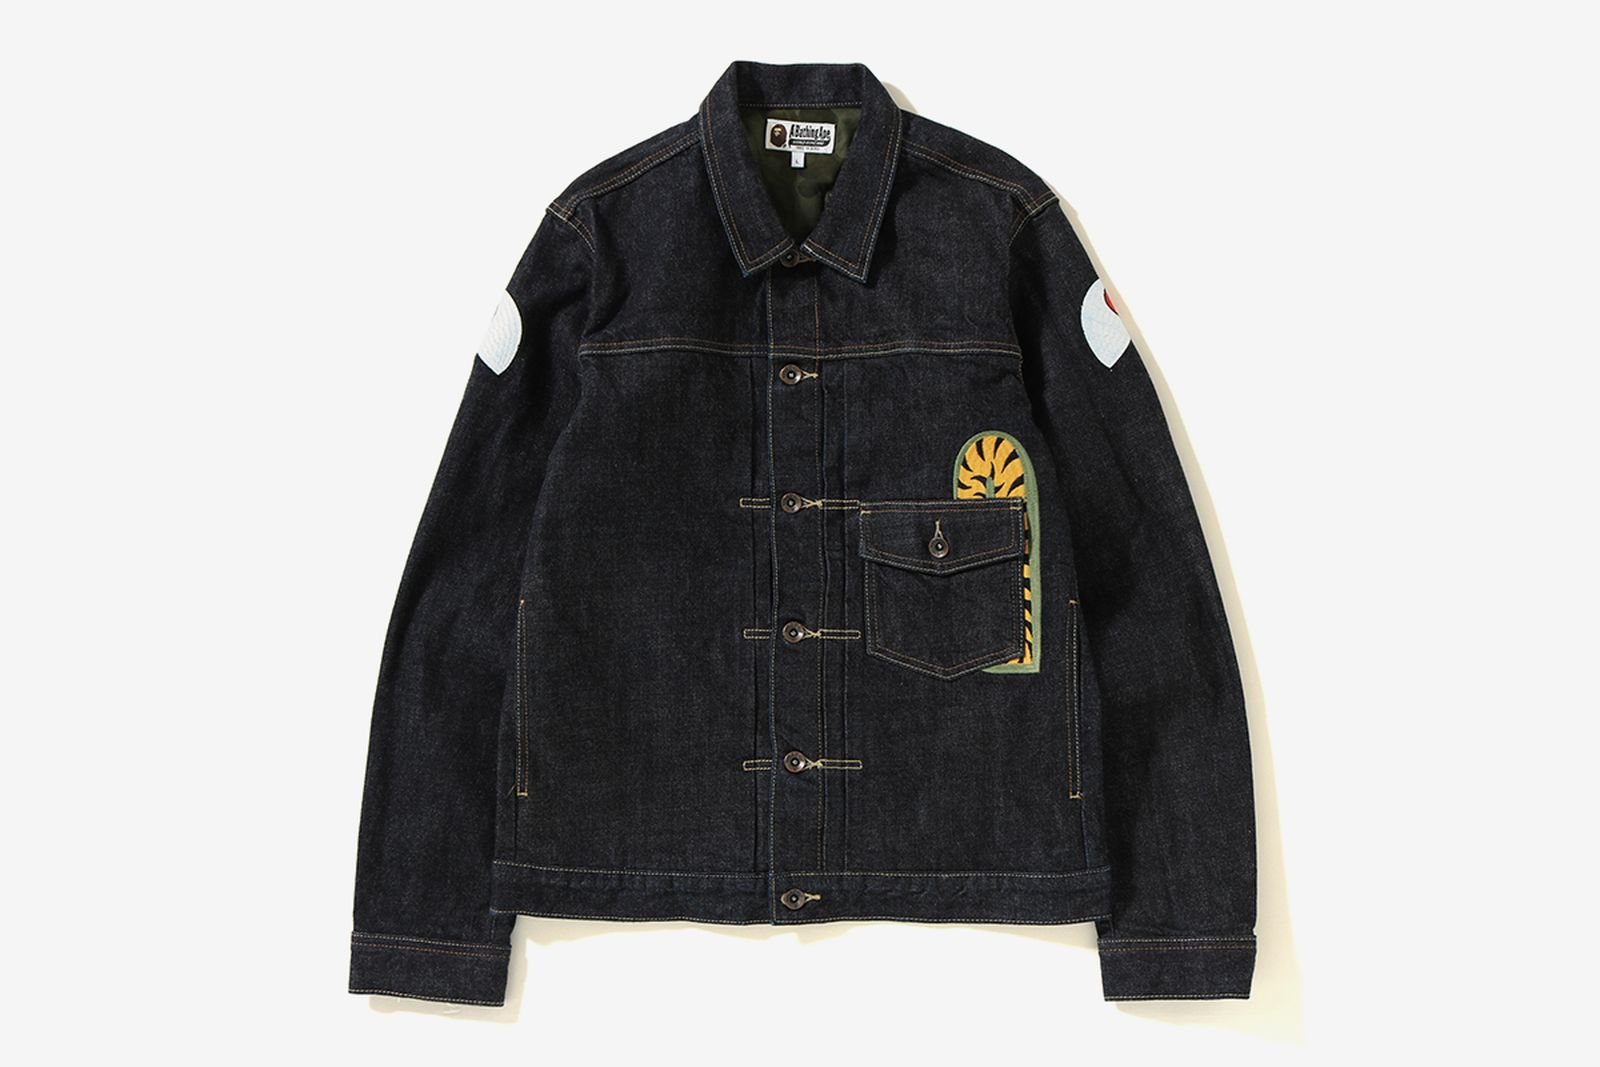 bape vintage denim collection A Bathing Ape